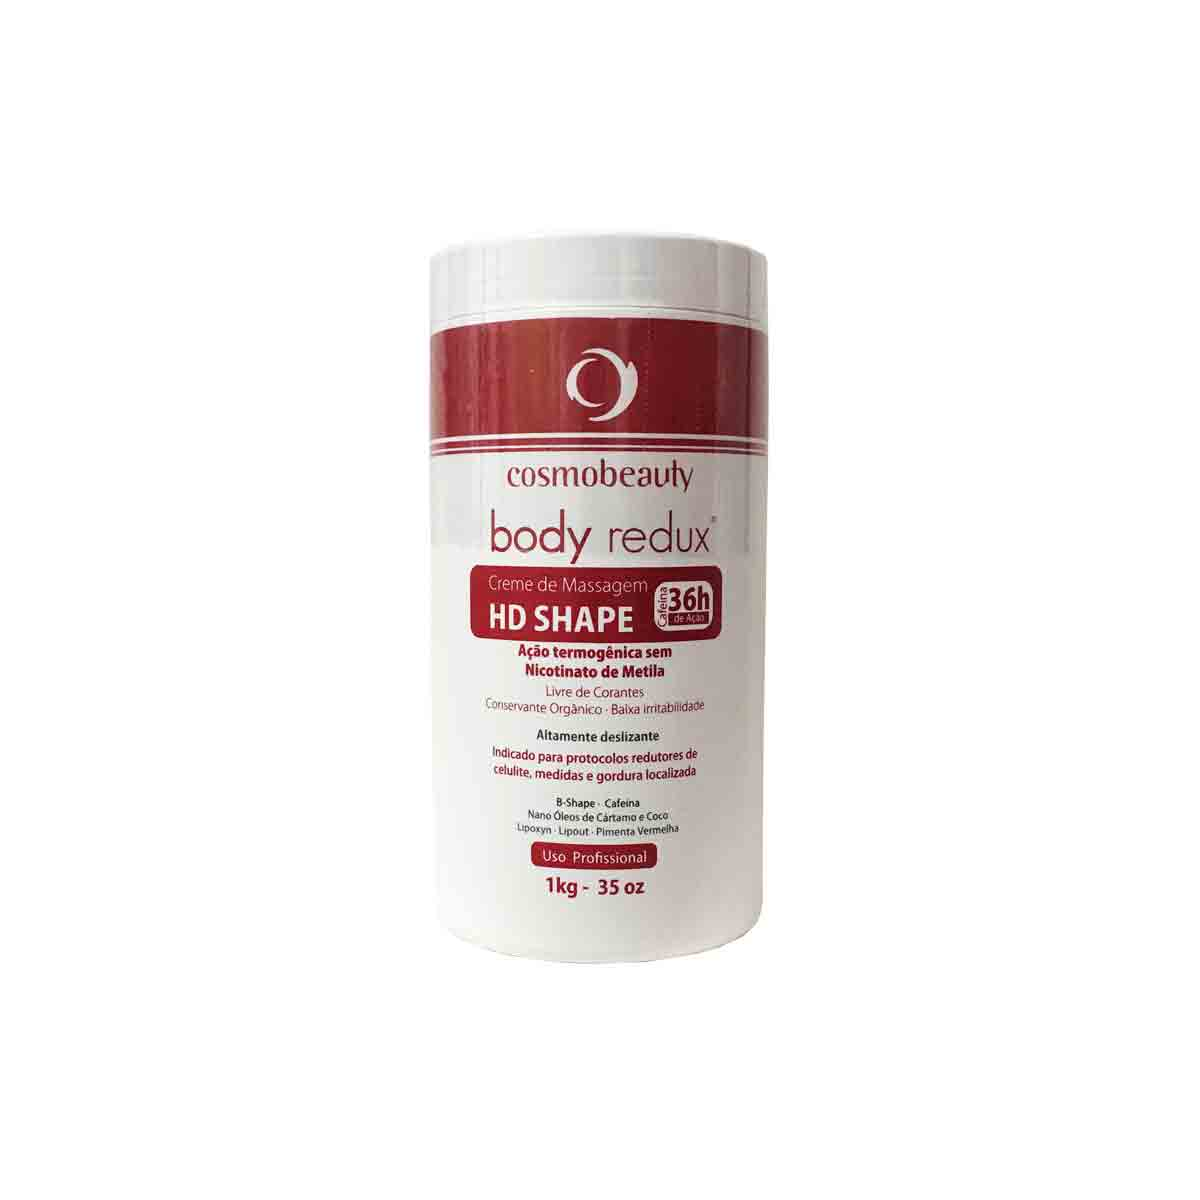 Creme de Massagem Body Redux HD Shape 1kg